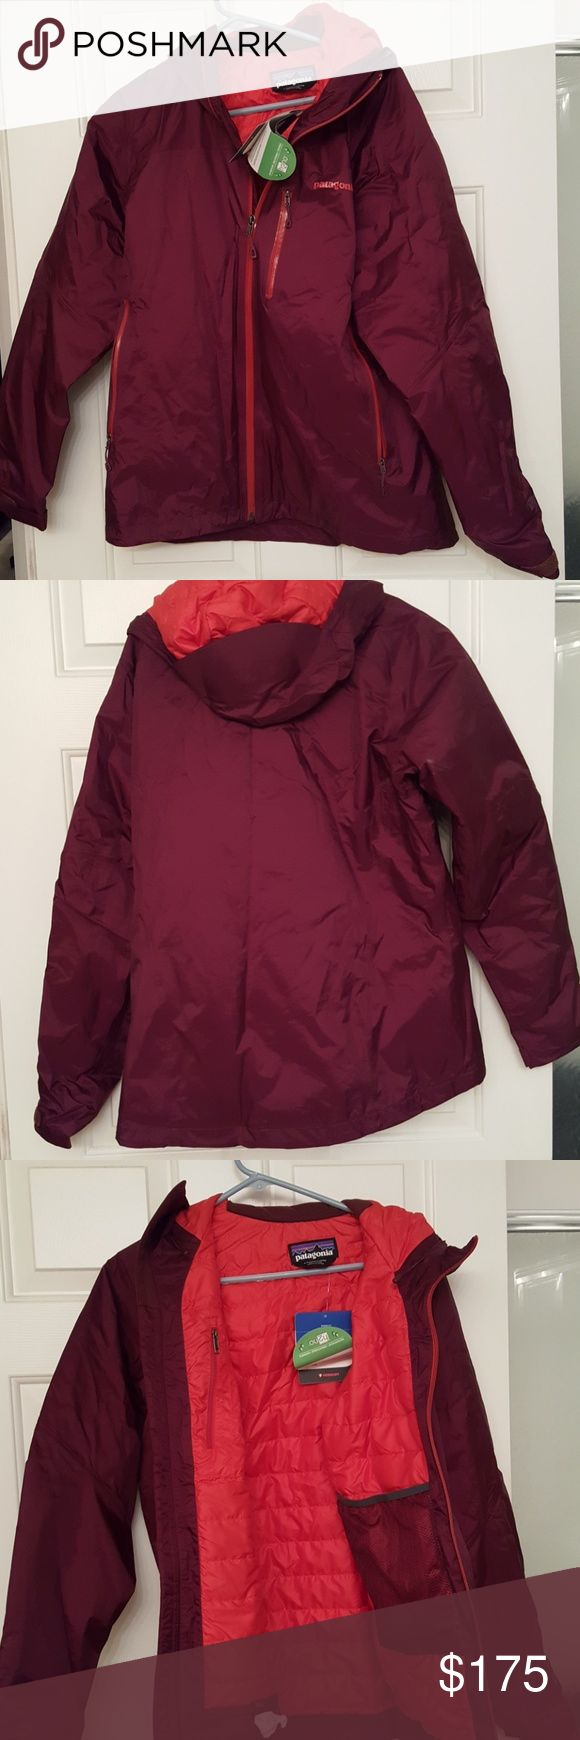 Patagonia insulated torrentshell jacket. NWT. Patagonia insulated torrentshell jacket. NWT. size large. burgundy and red. Patagonia Jackets & Coats